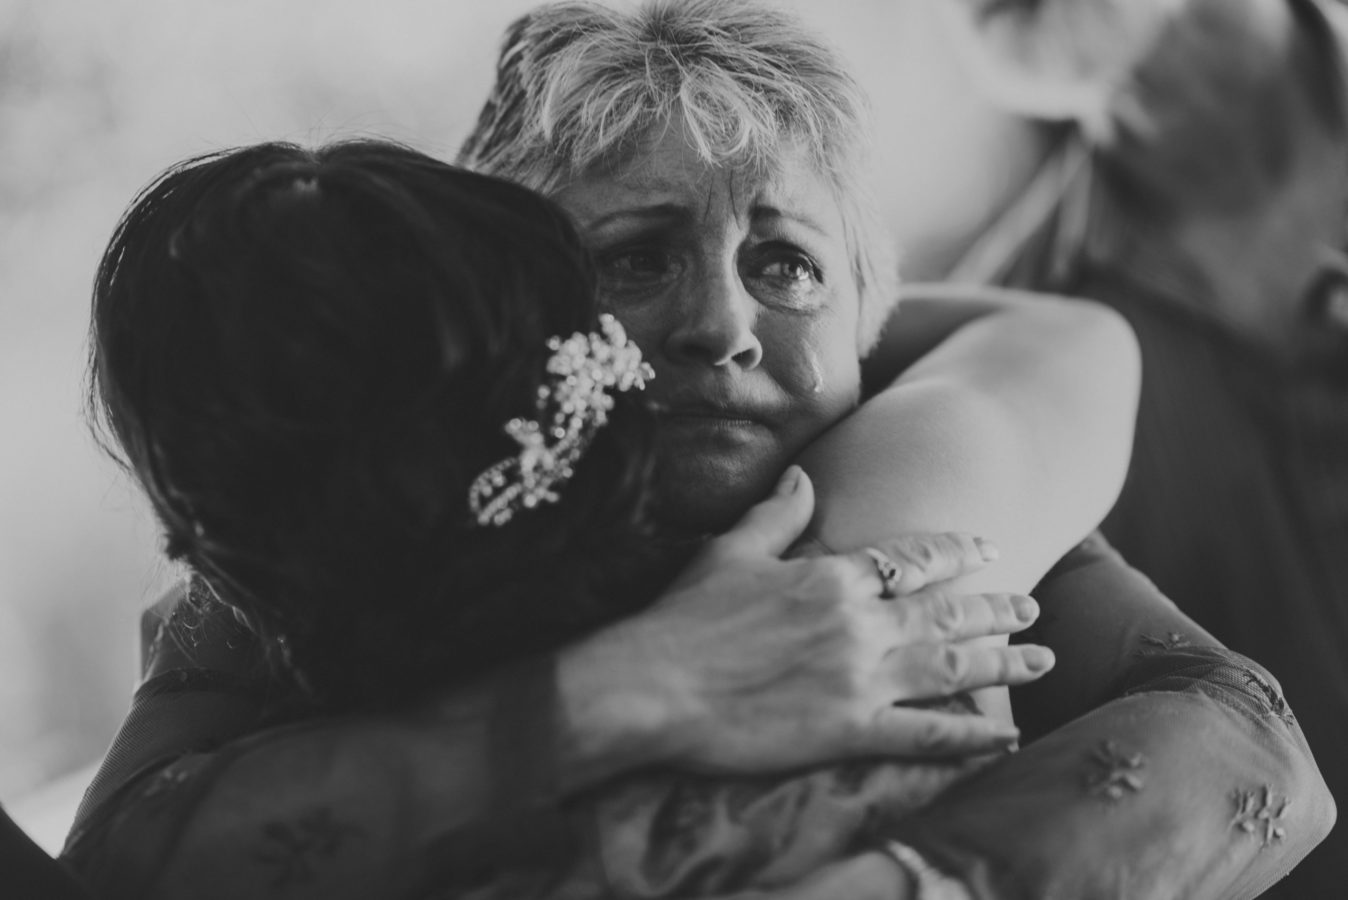 close up of a woman's teary face as she hugs a bride on her wedding day